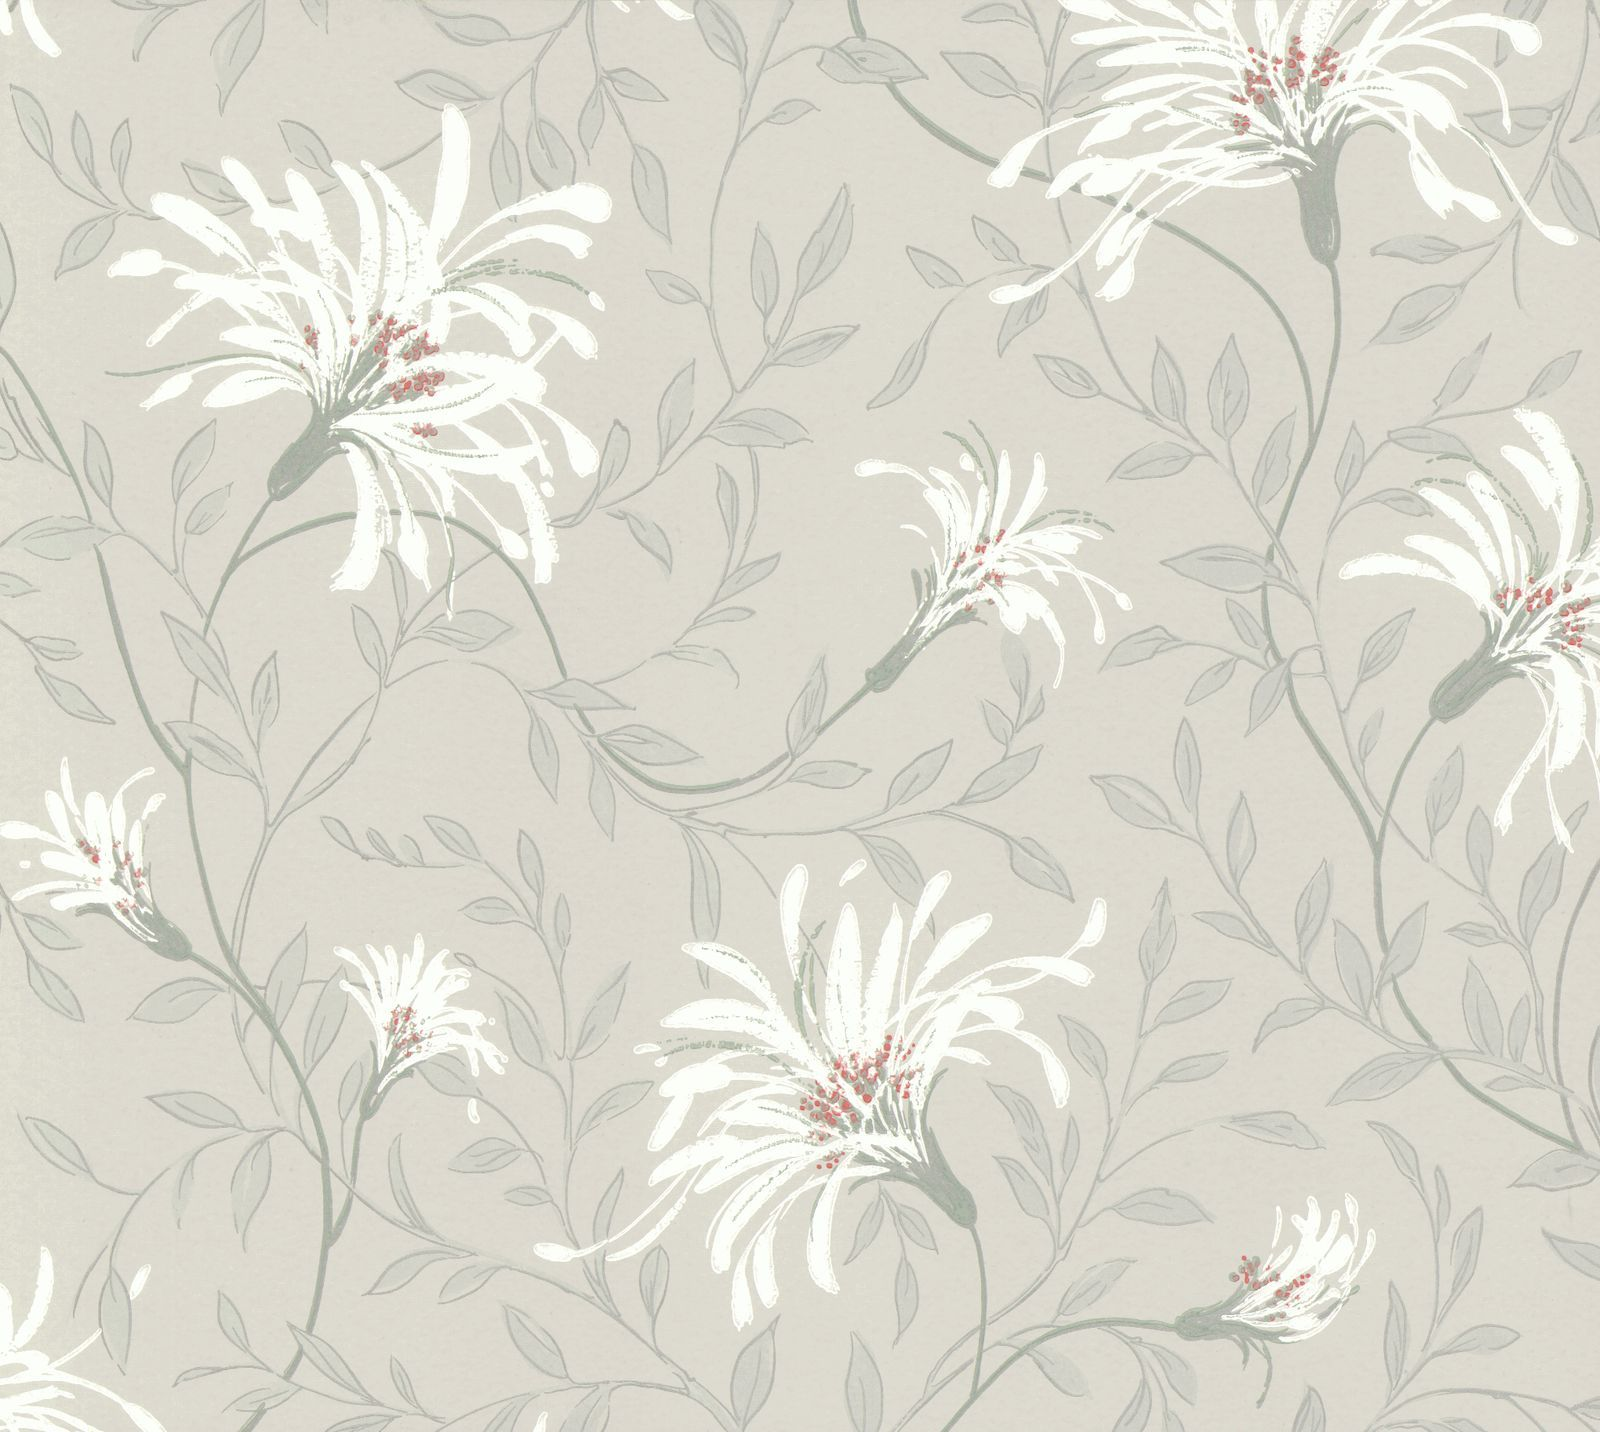 Tapetti 1838 Wallcoverings Fairhaven harmaa/punainen 0,52x10,05 m